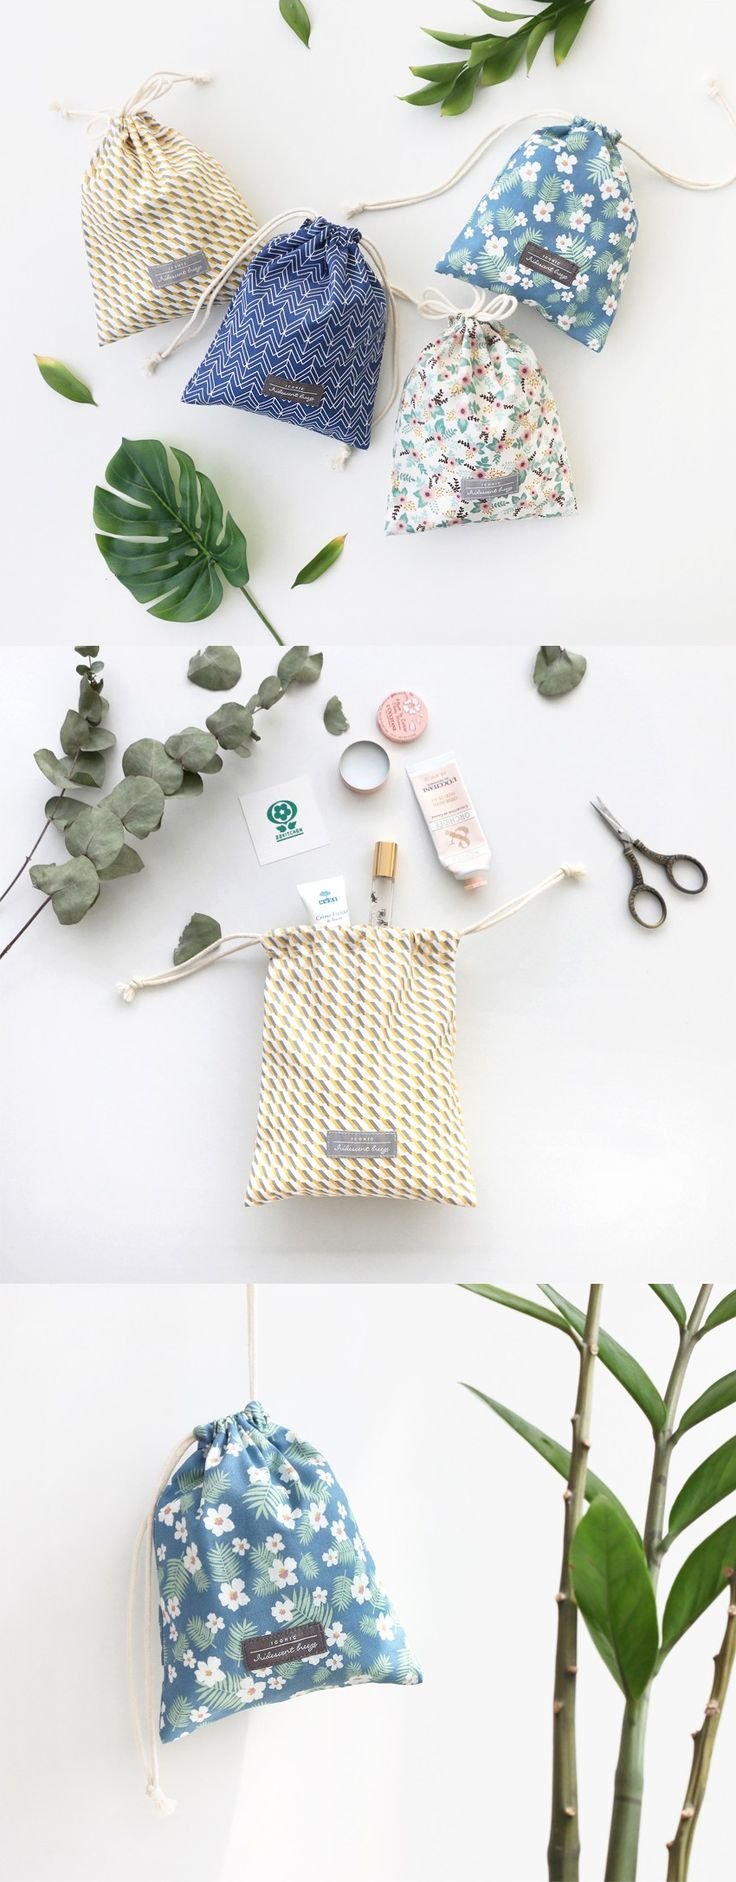 This versatile pouch can be a cosmetic pouch, cable pouch, digital camera pouch or any pouch you desire. The possibility is endless!